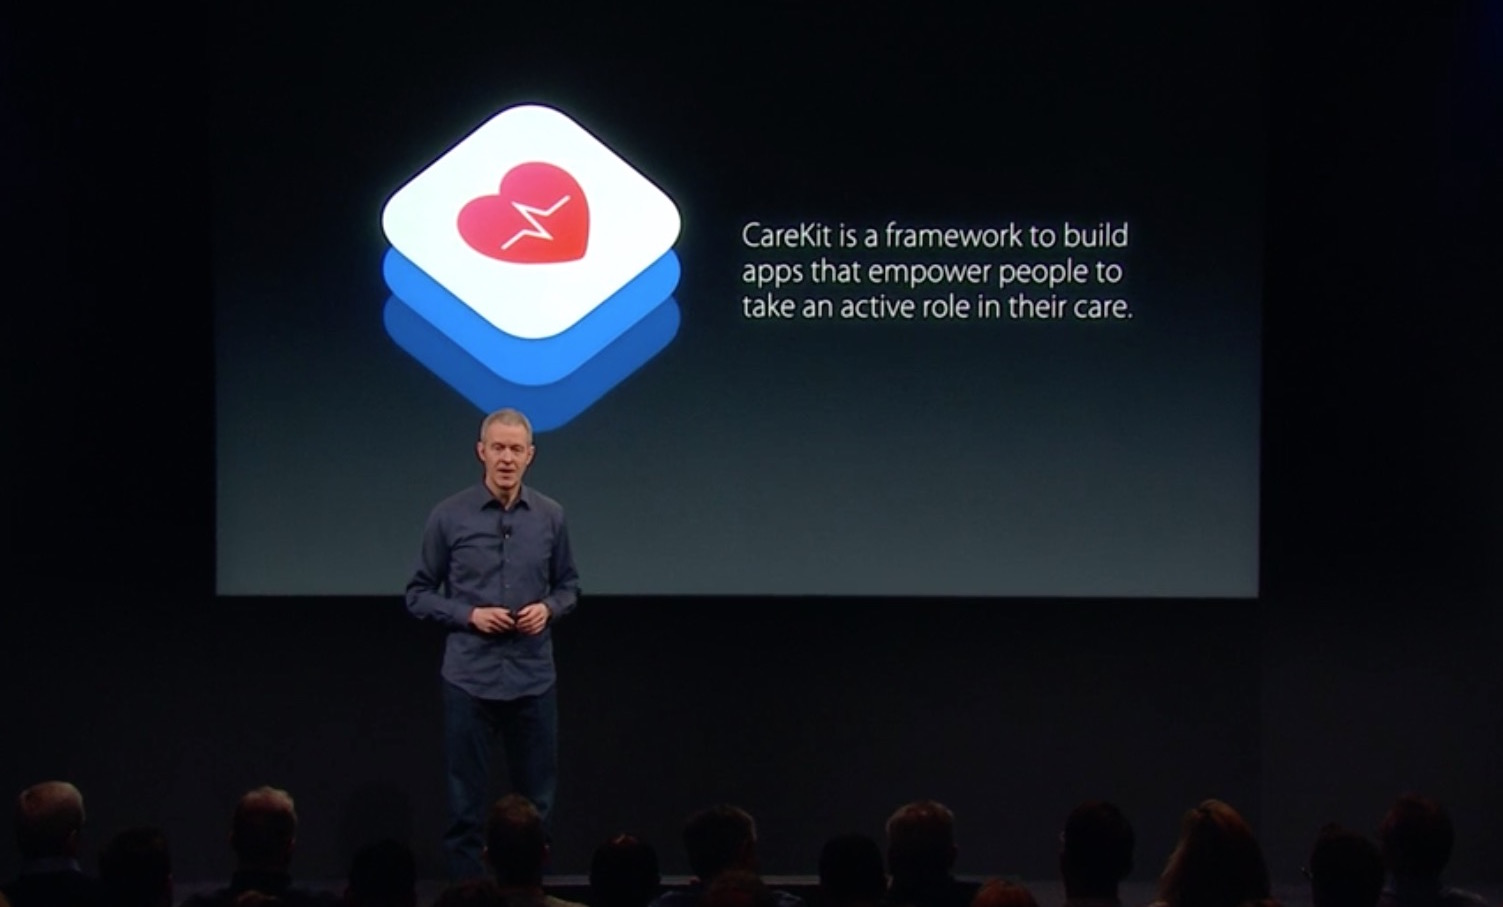 Introducing CareKit